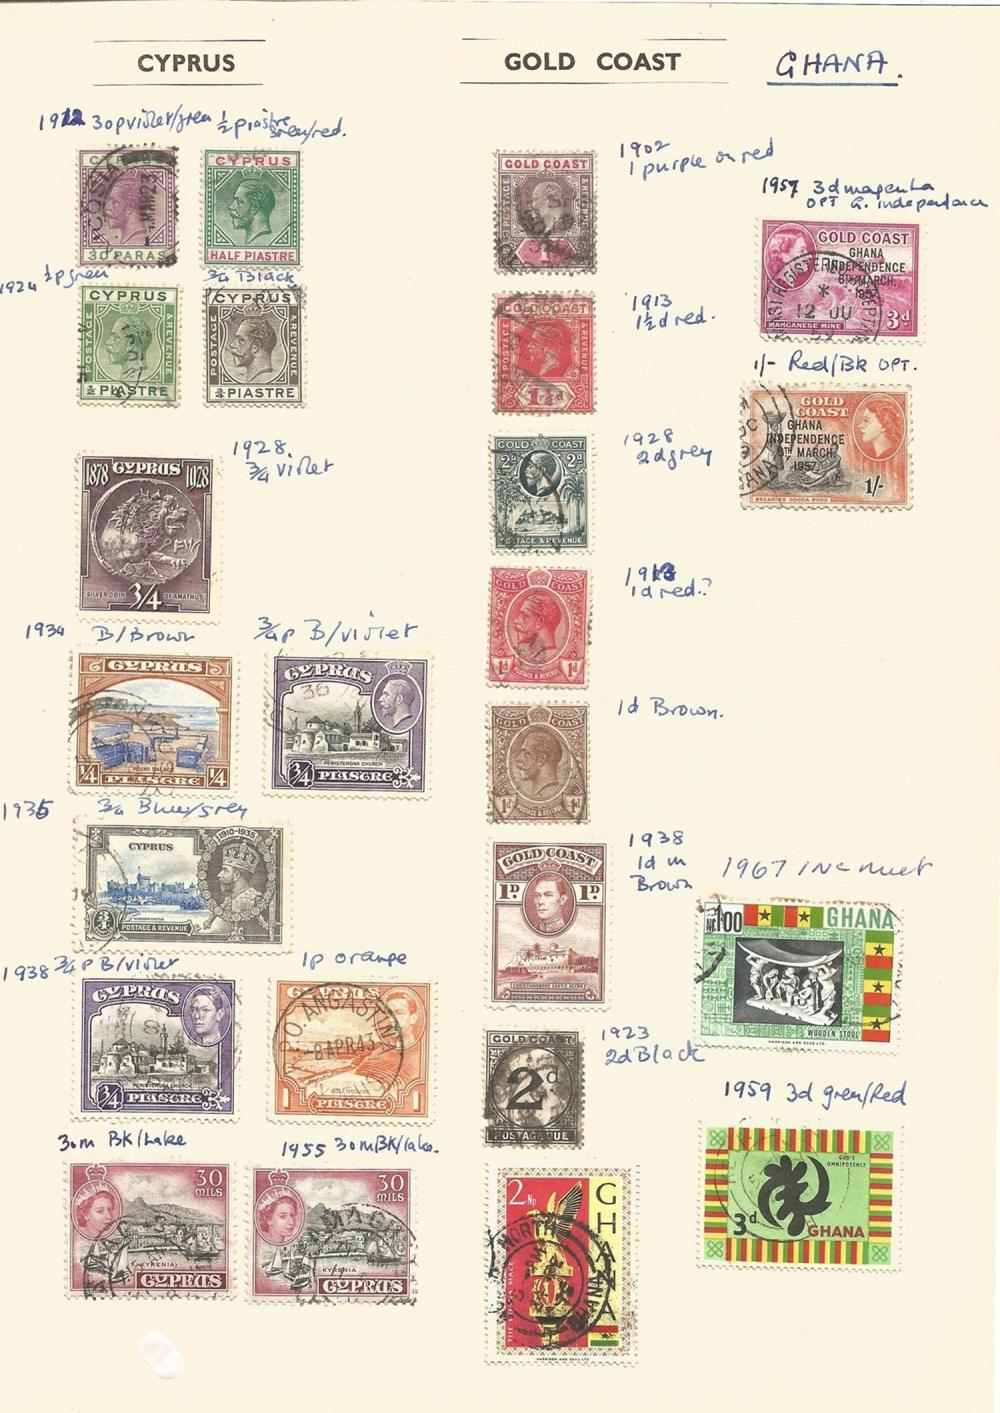 Orange Free State, Queensland, Gold Coast, Cyprus, stamps on loose sheets, approx. 50. Good